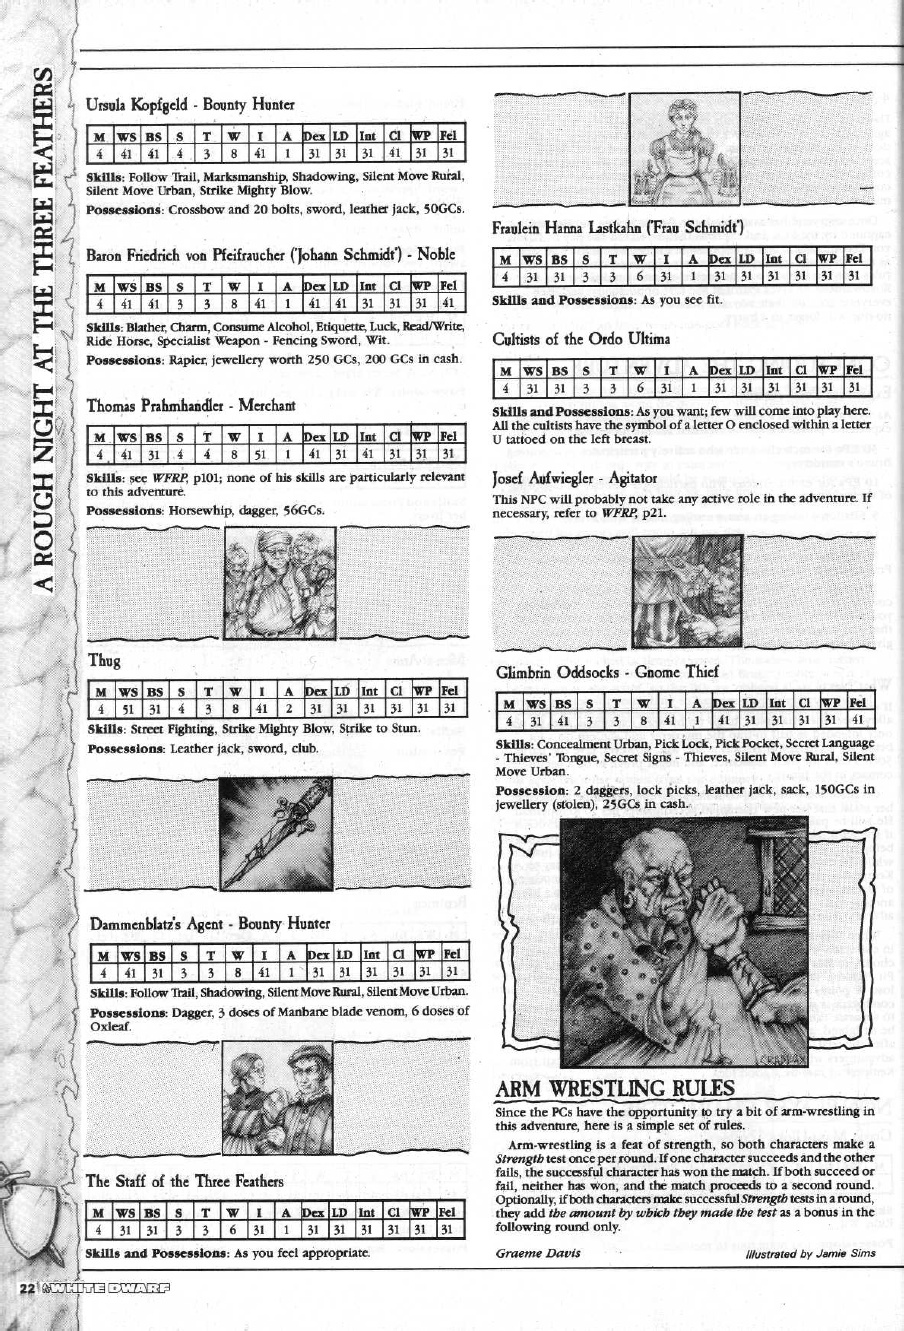 Realm of Chaos 80s: WFRP'd: A Rough Night at the Three Feathers